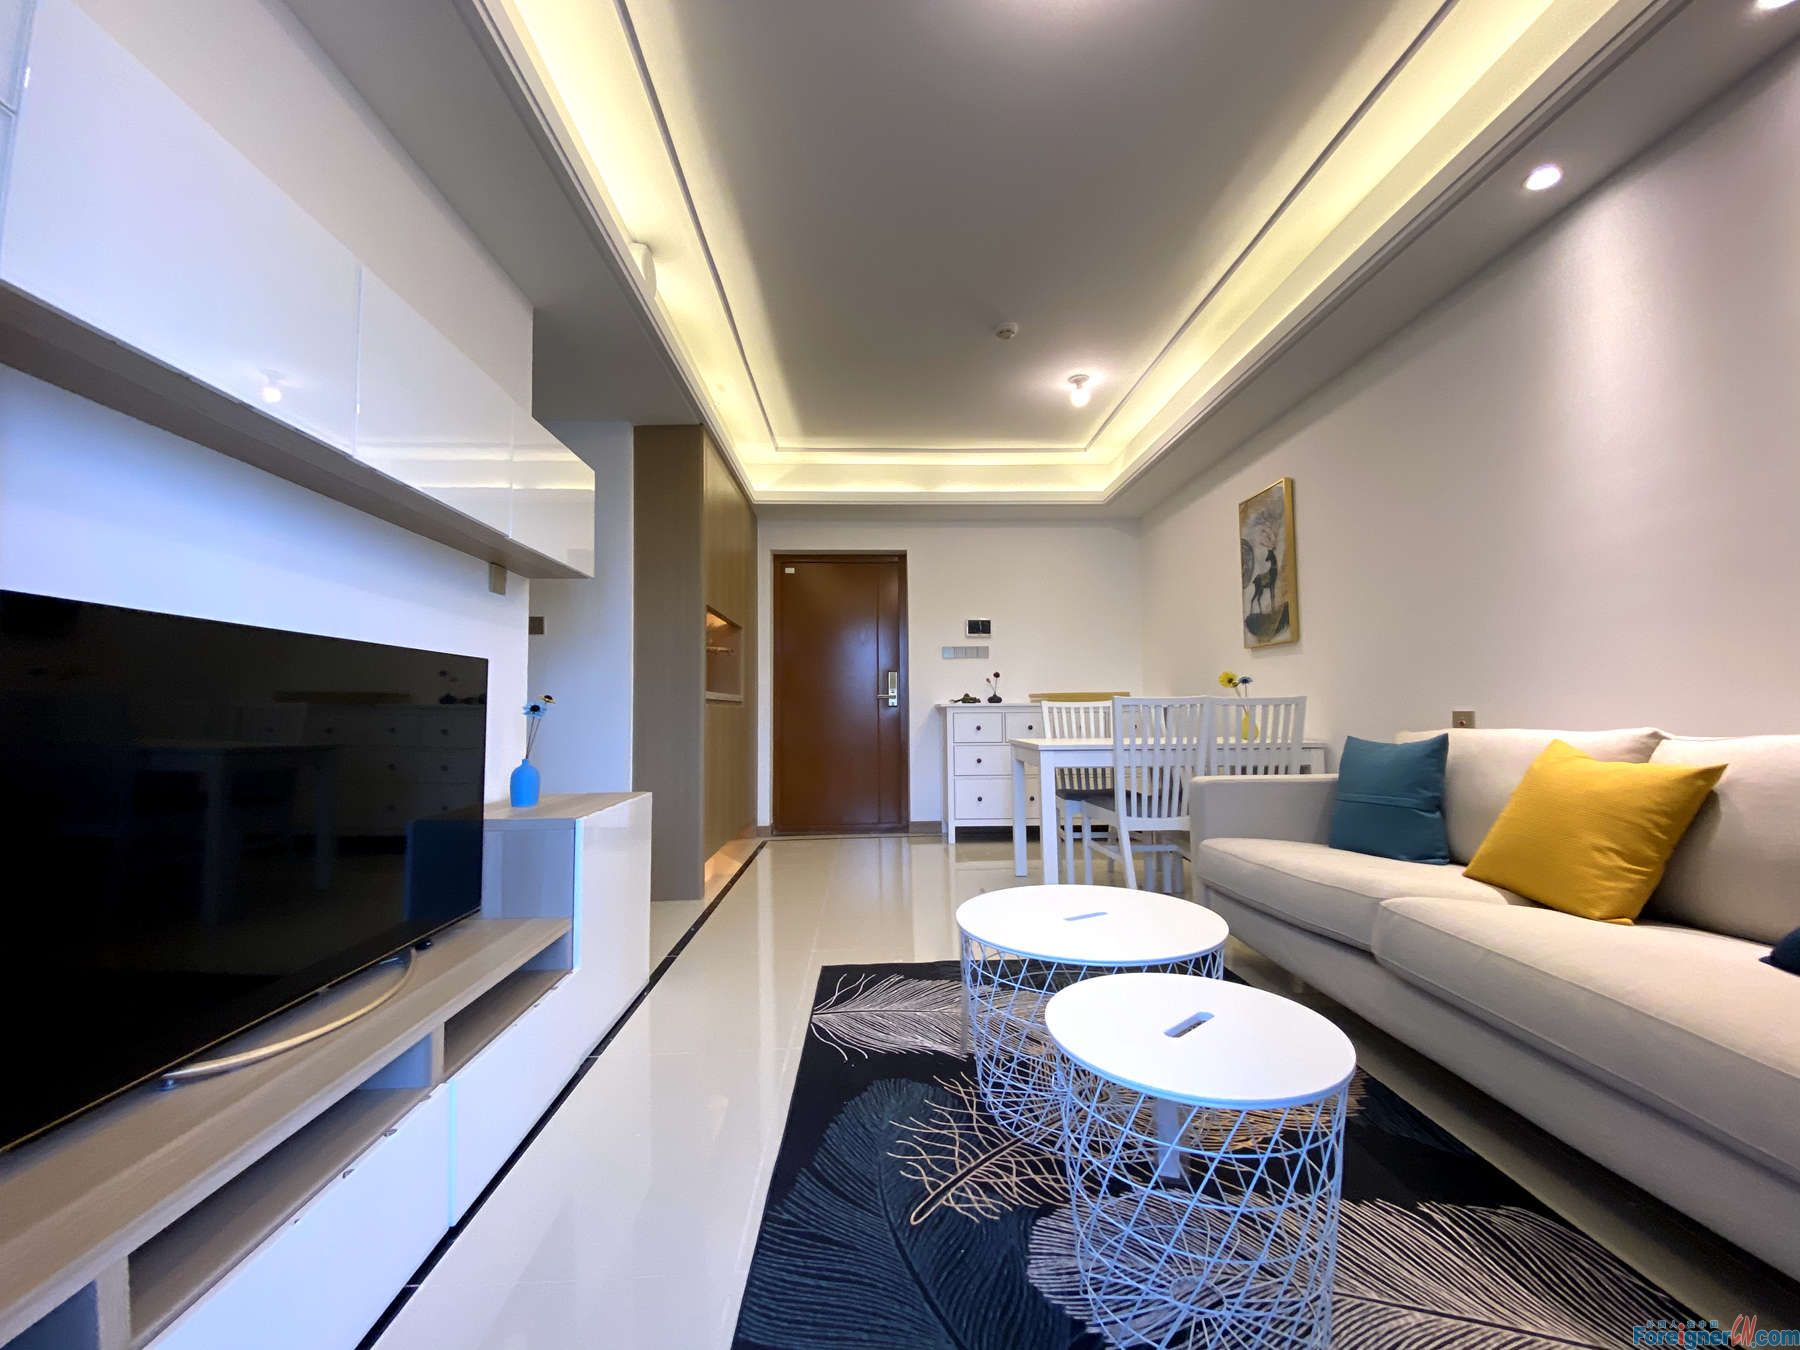 Astonishing! Flats for rent in Suzhou–new brand- furnished-Four season temperature controlling system -cozy decoration